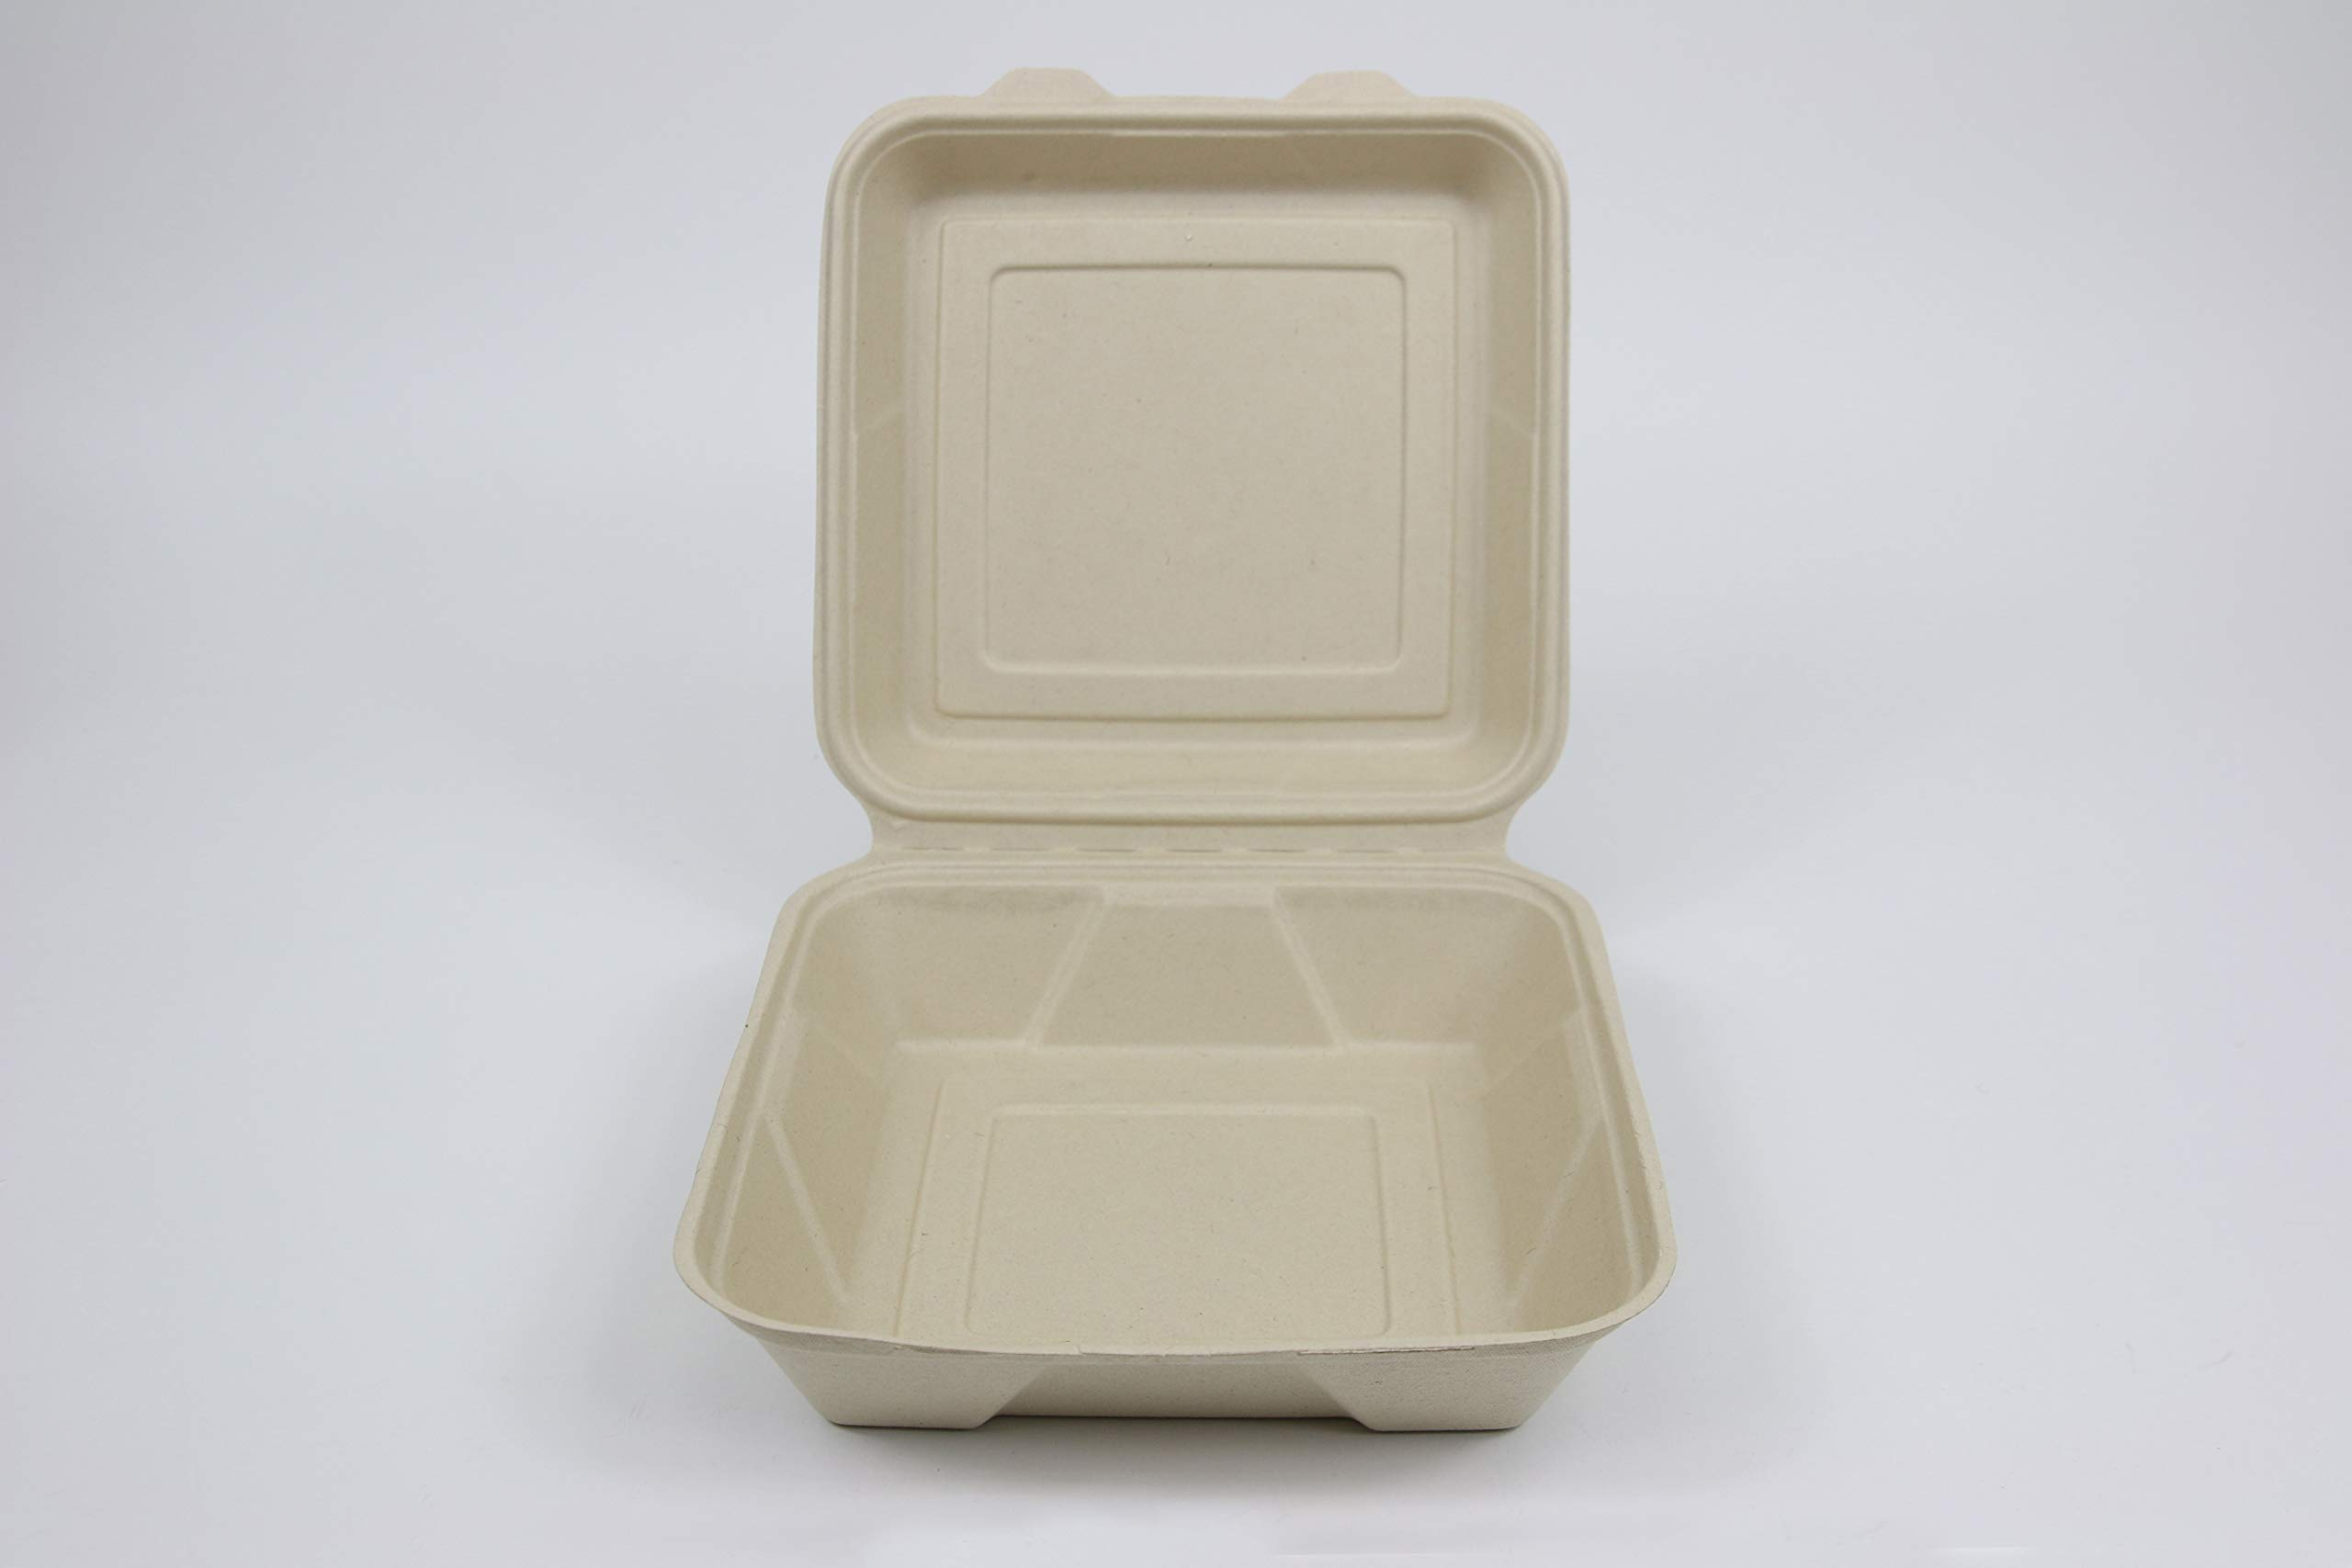 Total Papers, 9''x 9'' Single Compartment Clam Shell Container, 200 per case. Environmentally Responsible 100% Biodegradable, Compostable Wheat Straw Fiber (NO Bagasse, NO Bleach) Tree Free